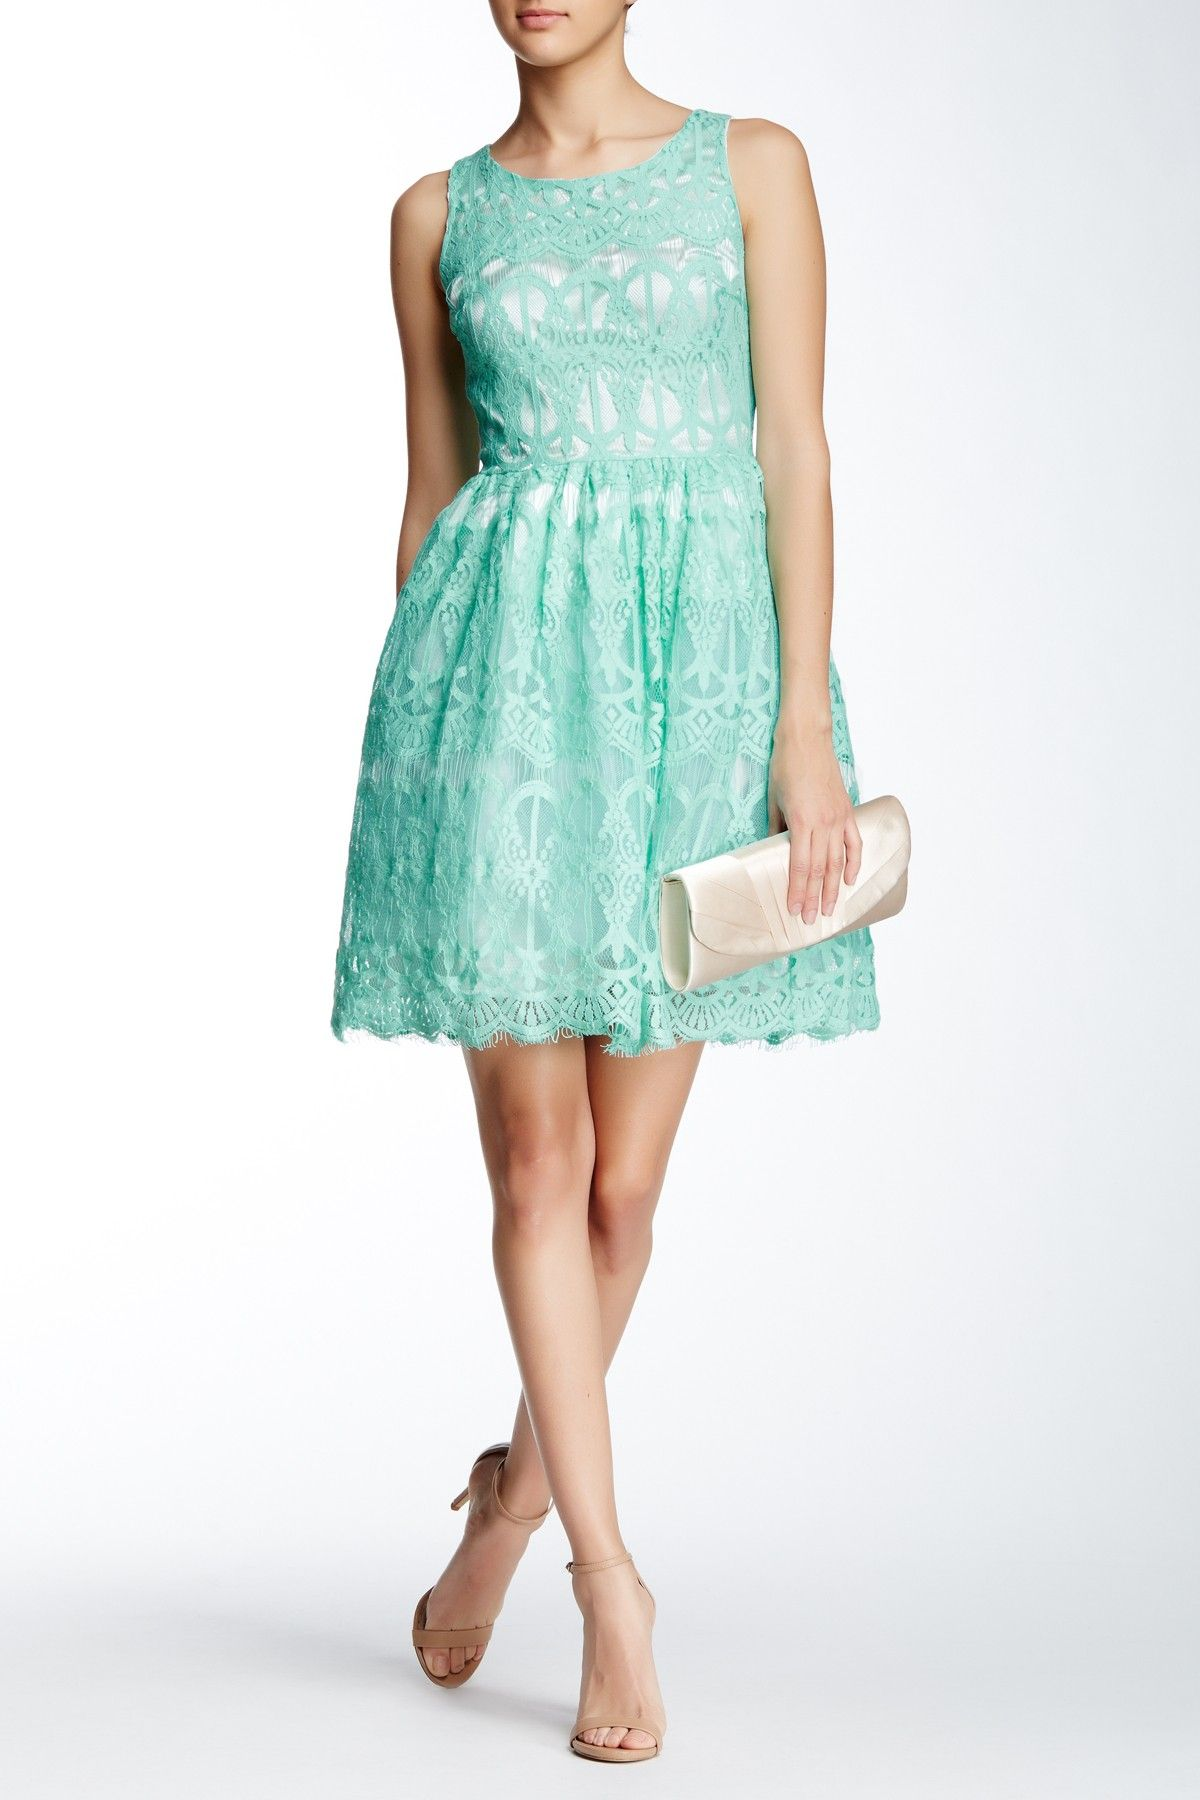 Green dress with lace overlay  Soprano  Lace Skater Dress  Nordstrom and Weddings